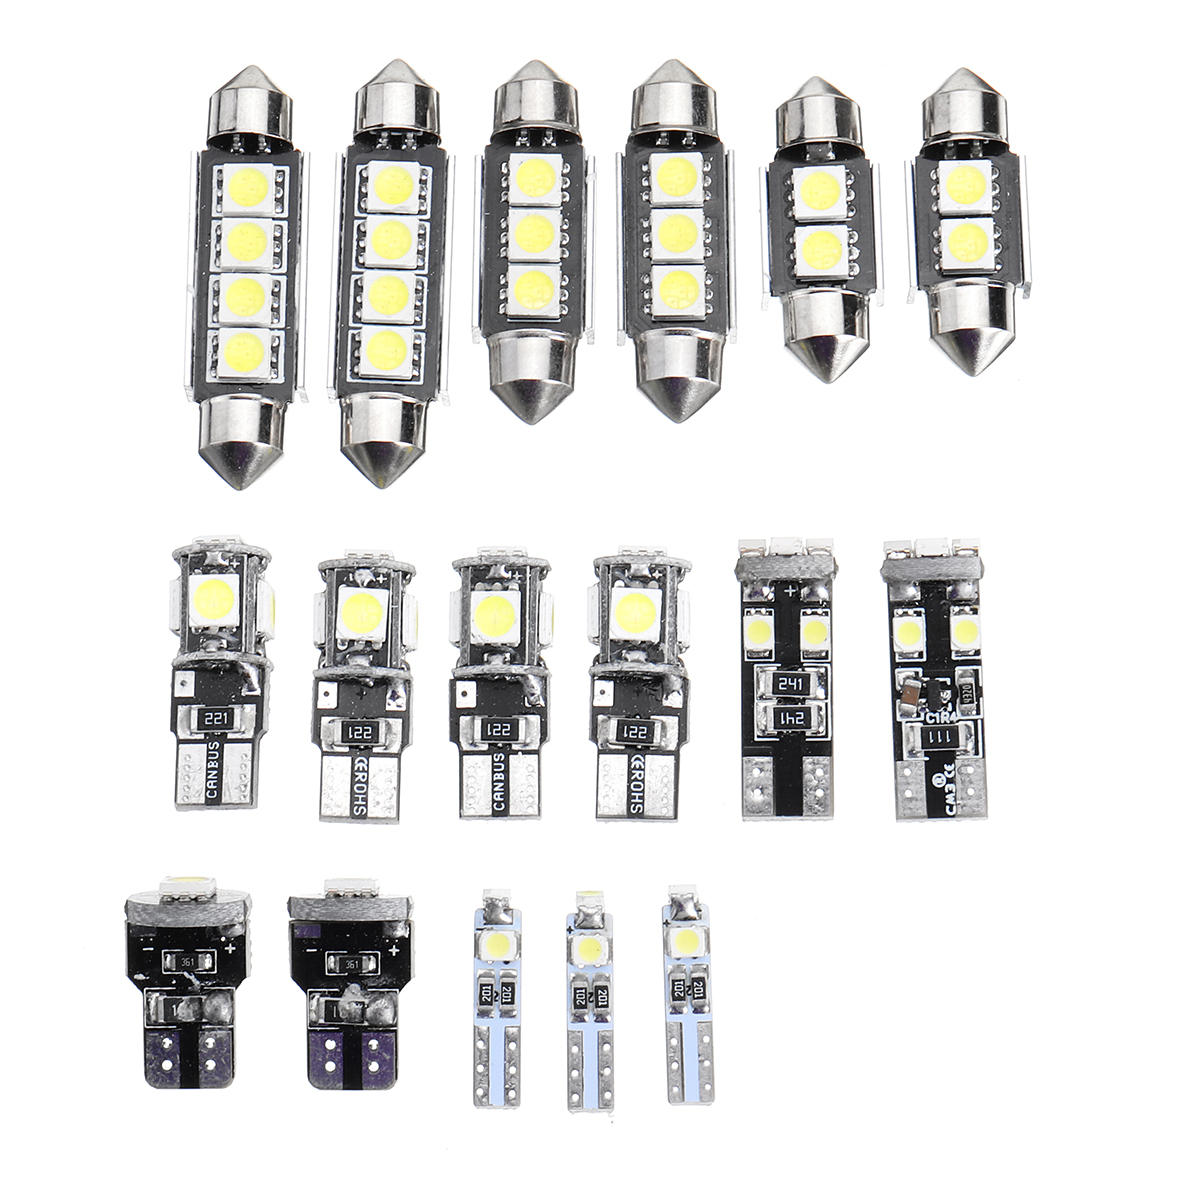 T10 T5 White Car Interior Led Lamp Replacement Bulb Reading Dome Lights For Bmw E90 E91 E92 3